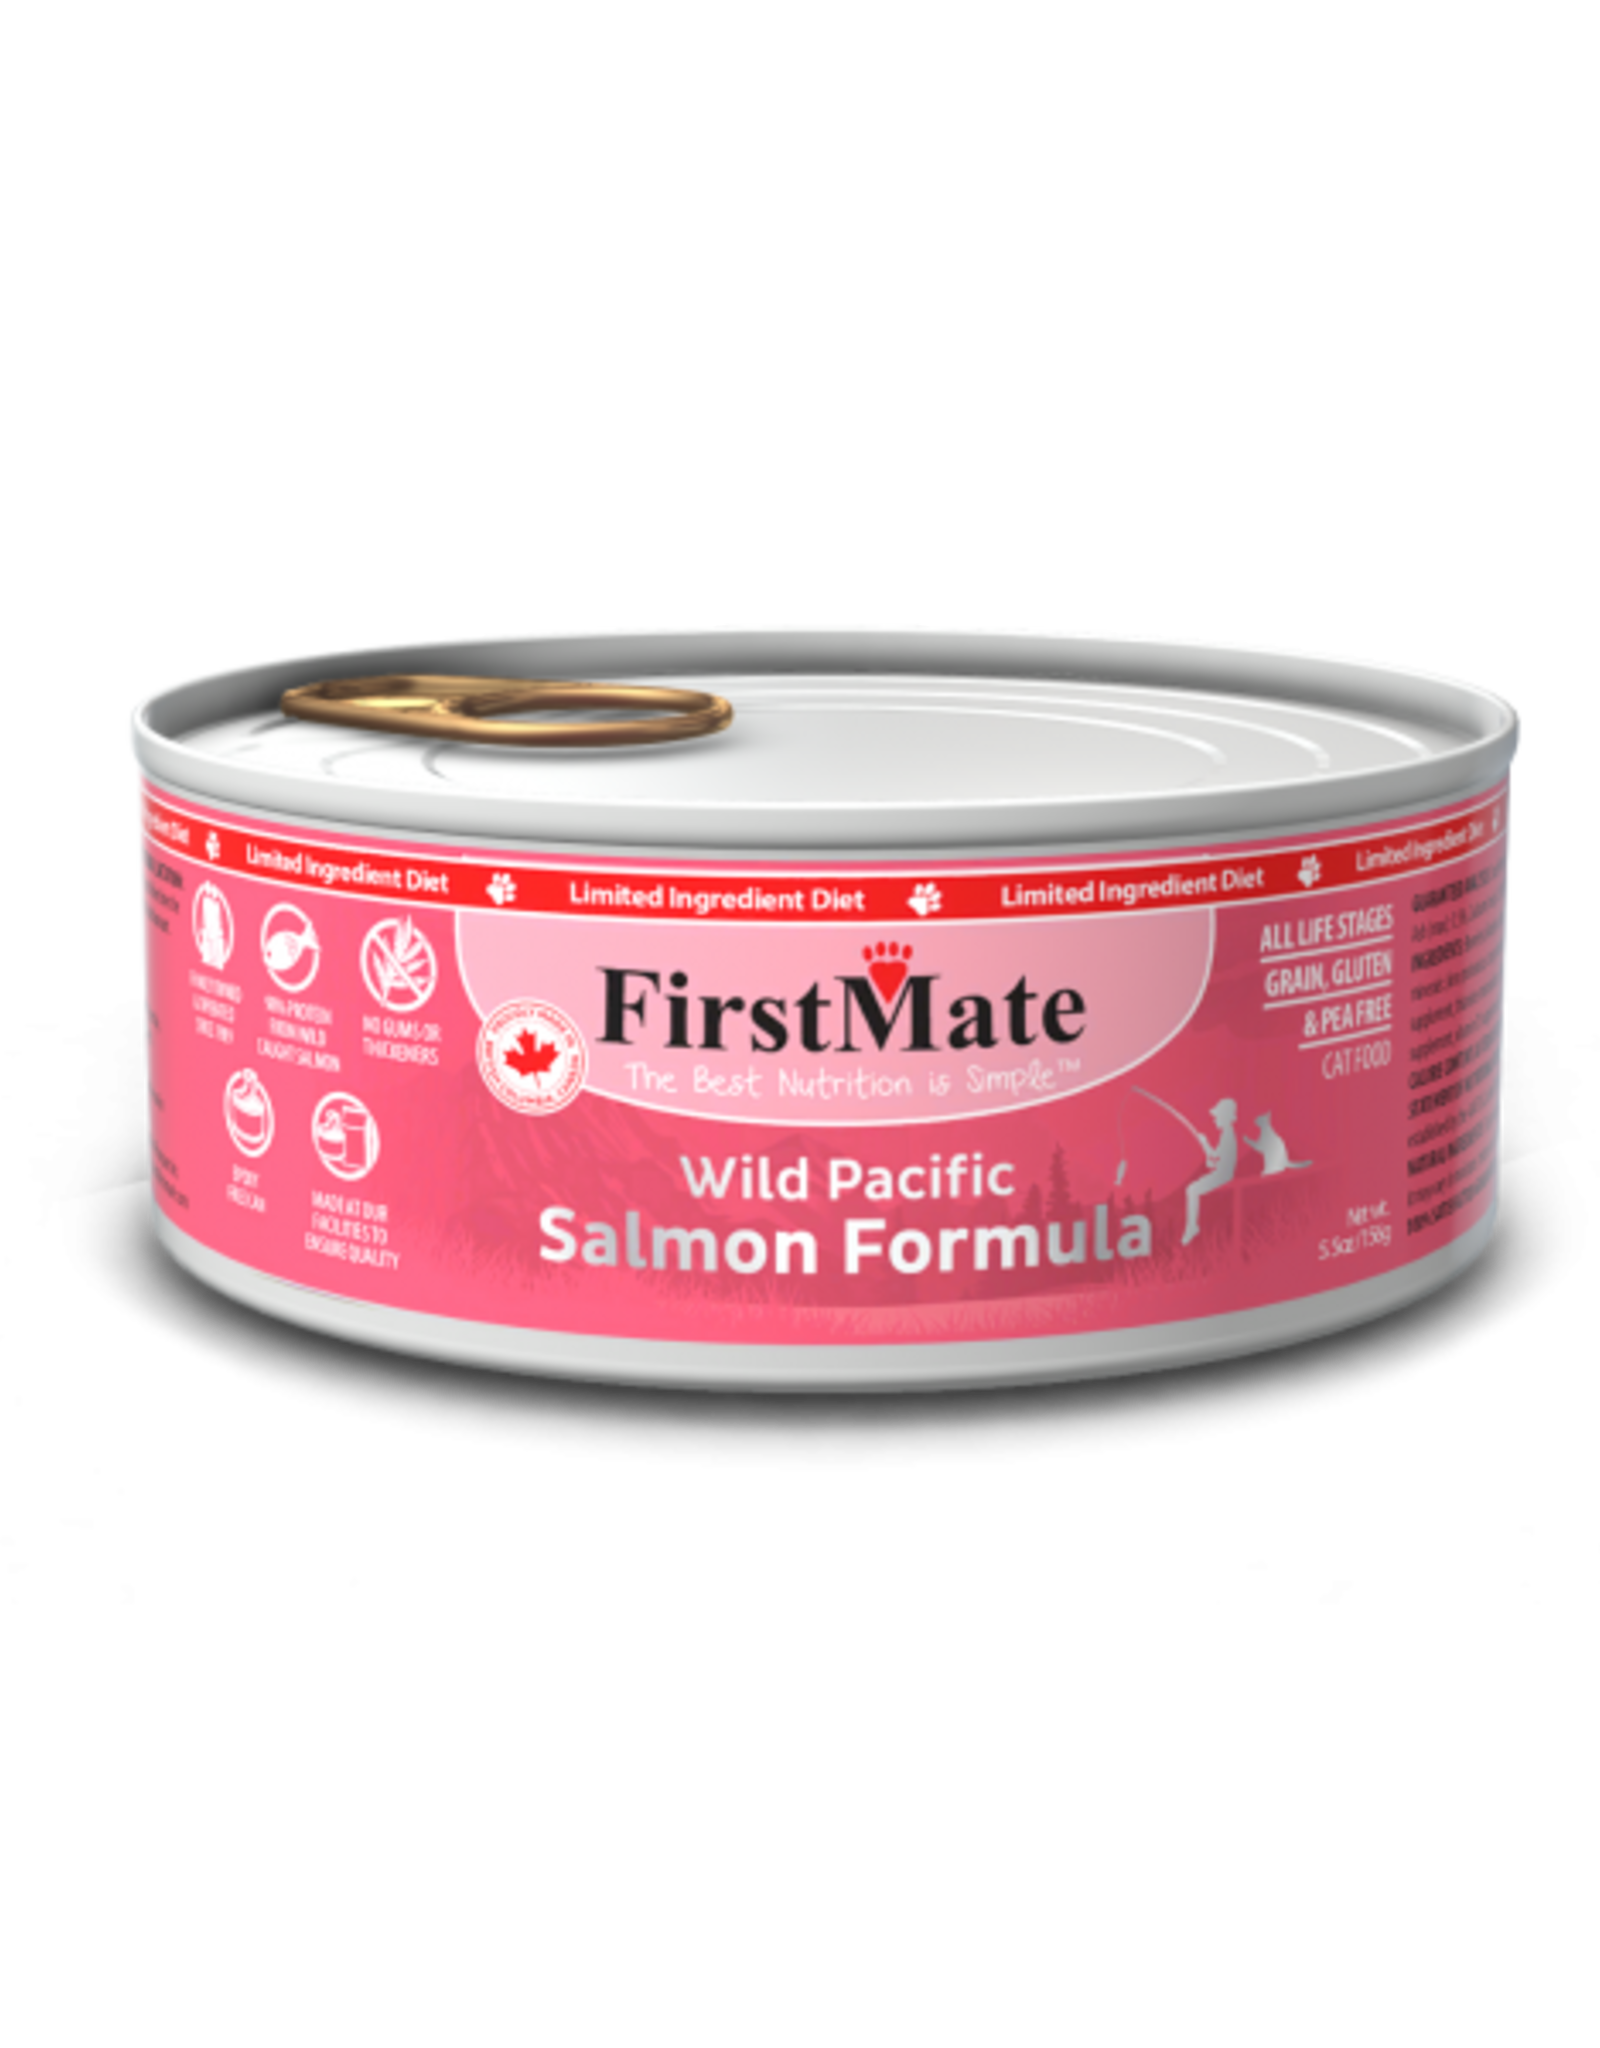 FirstMate Pet Food Cat LID Salmon Pate - Grain-Free 5.5oz